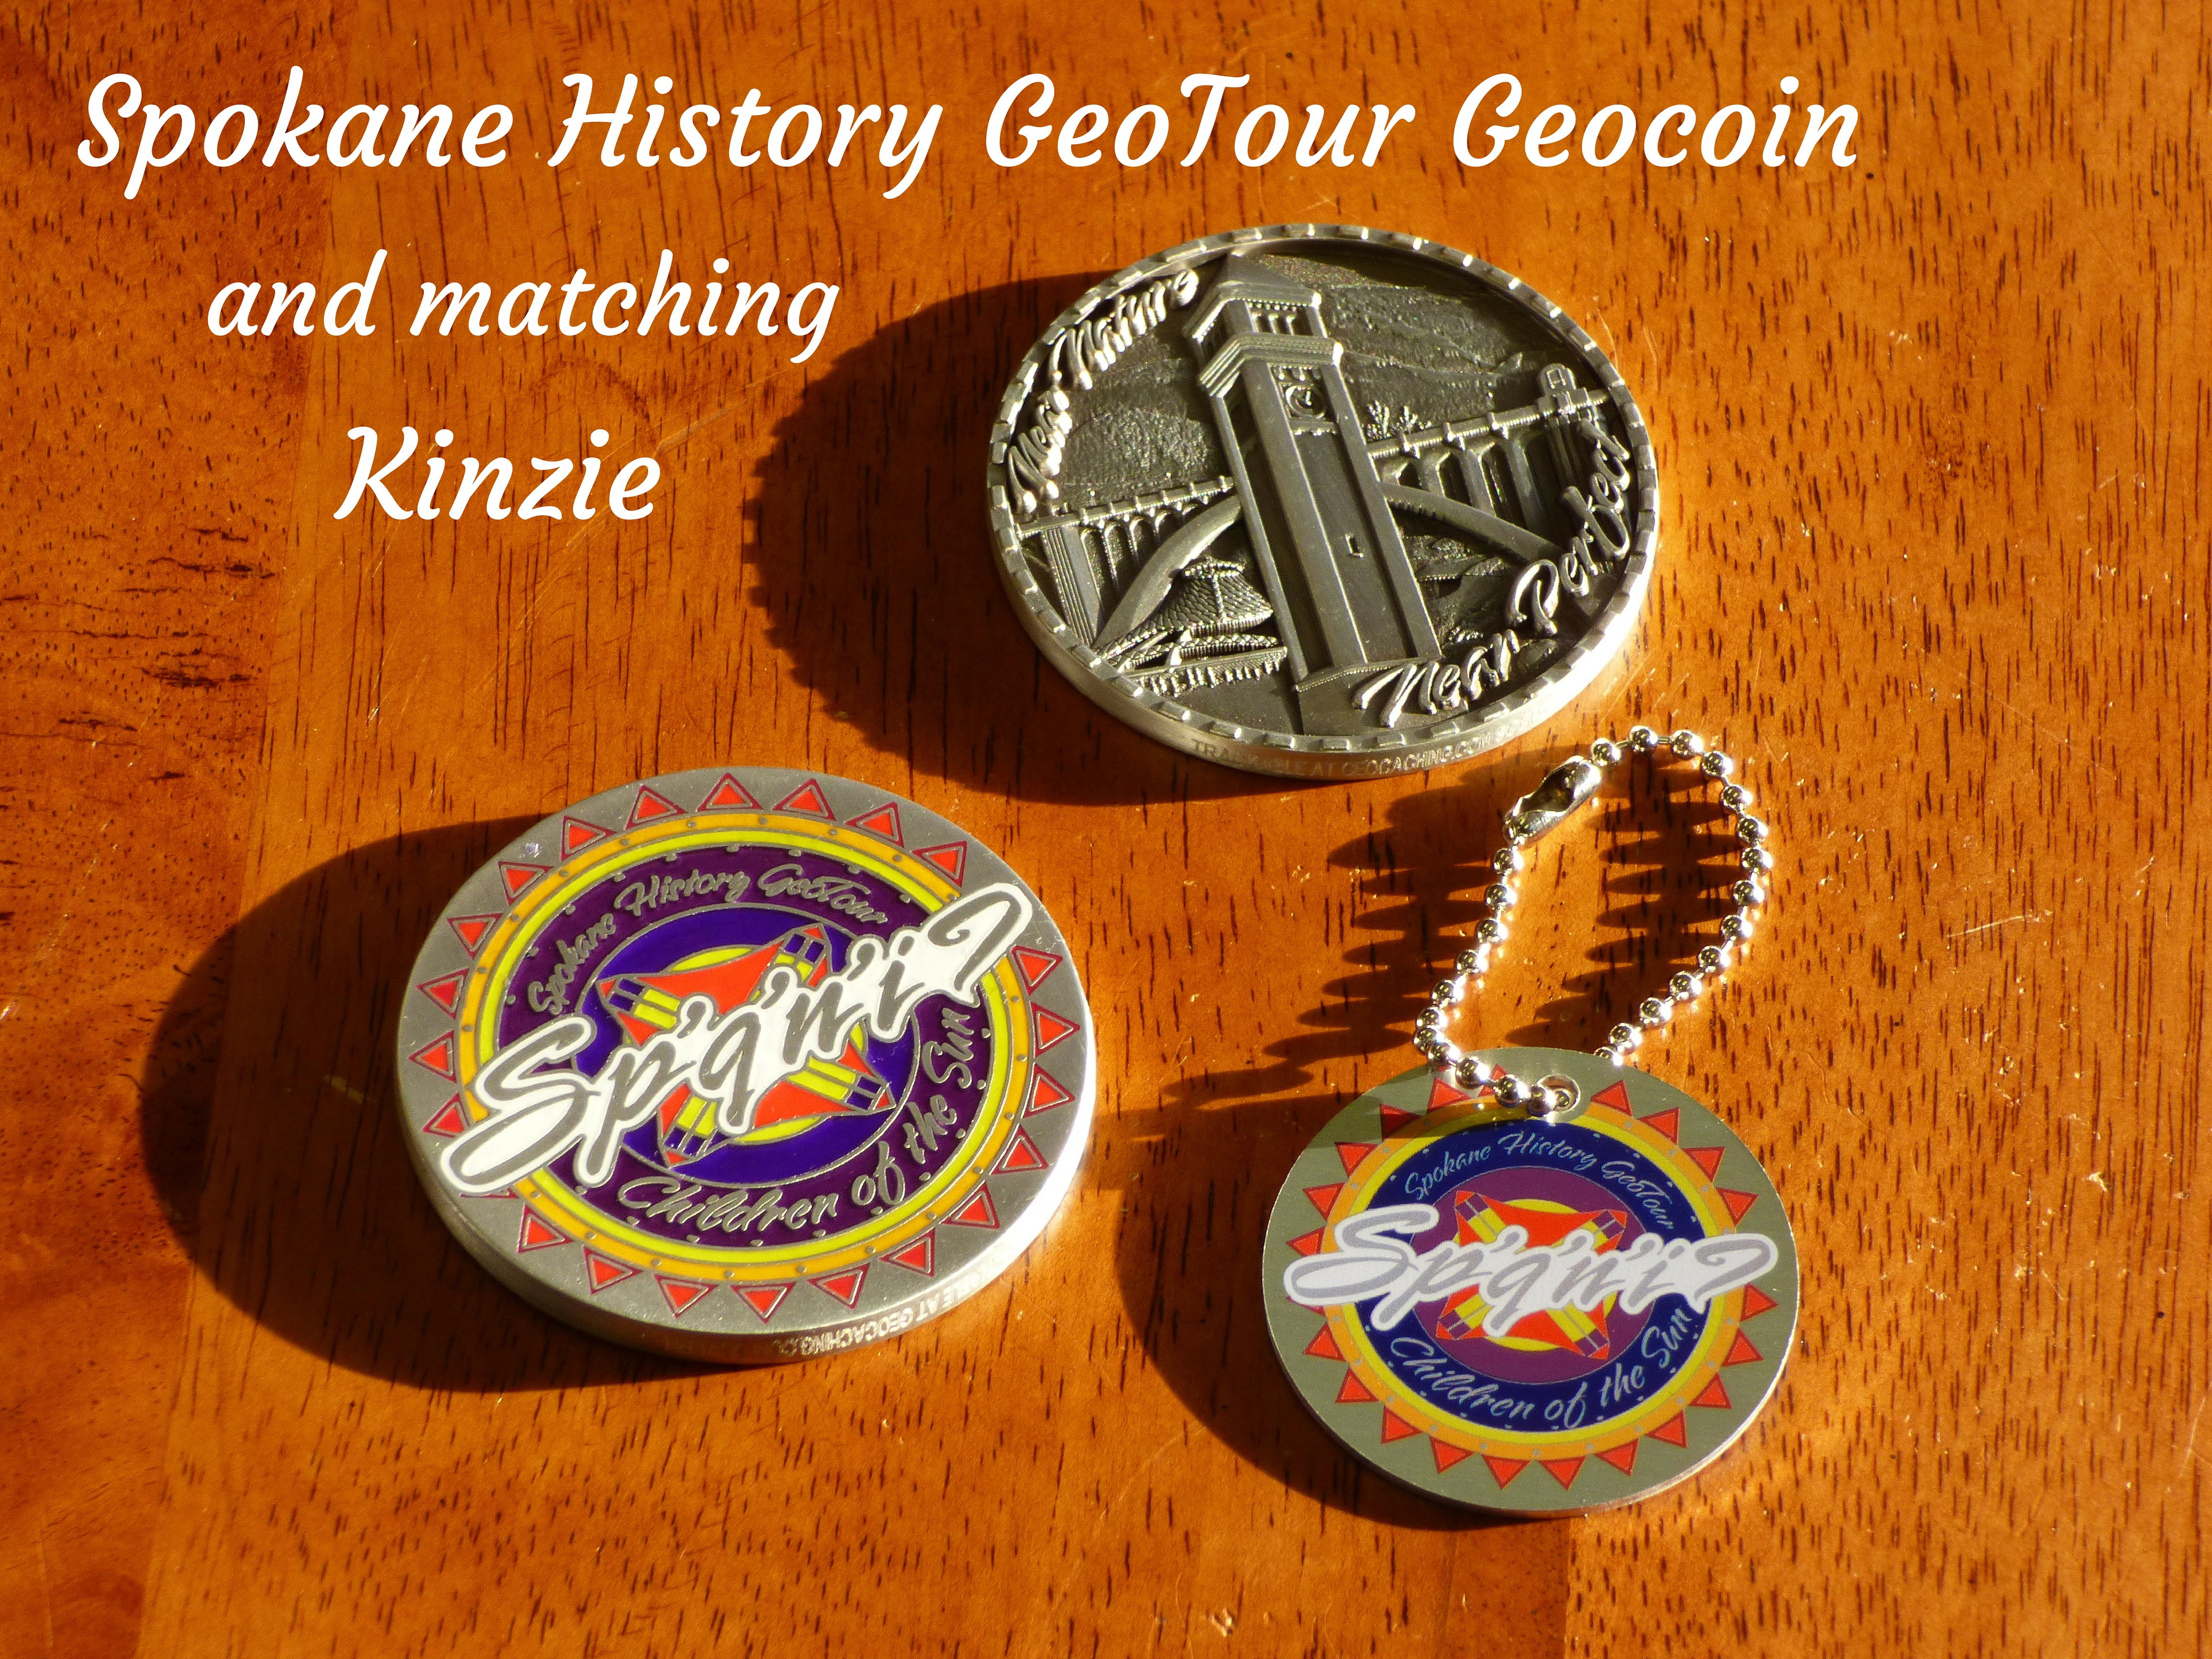 Geocoin: The Prize for earning 100 points on the Passport